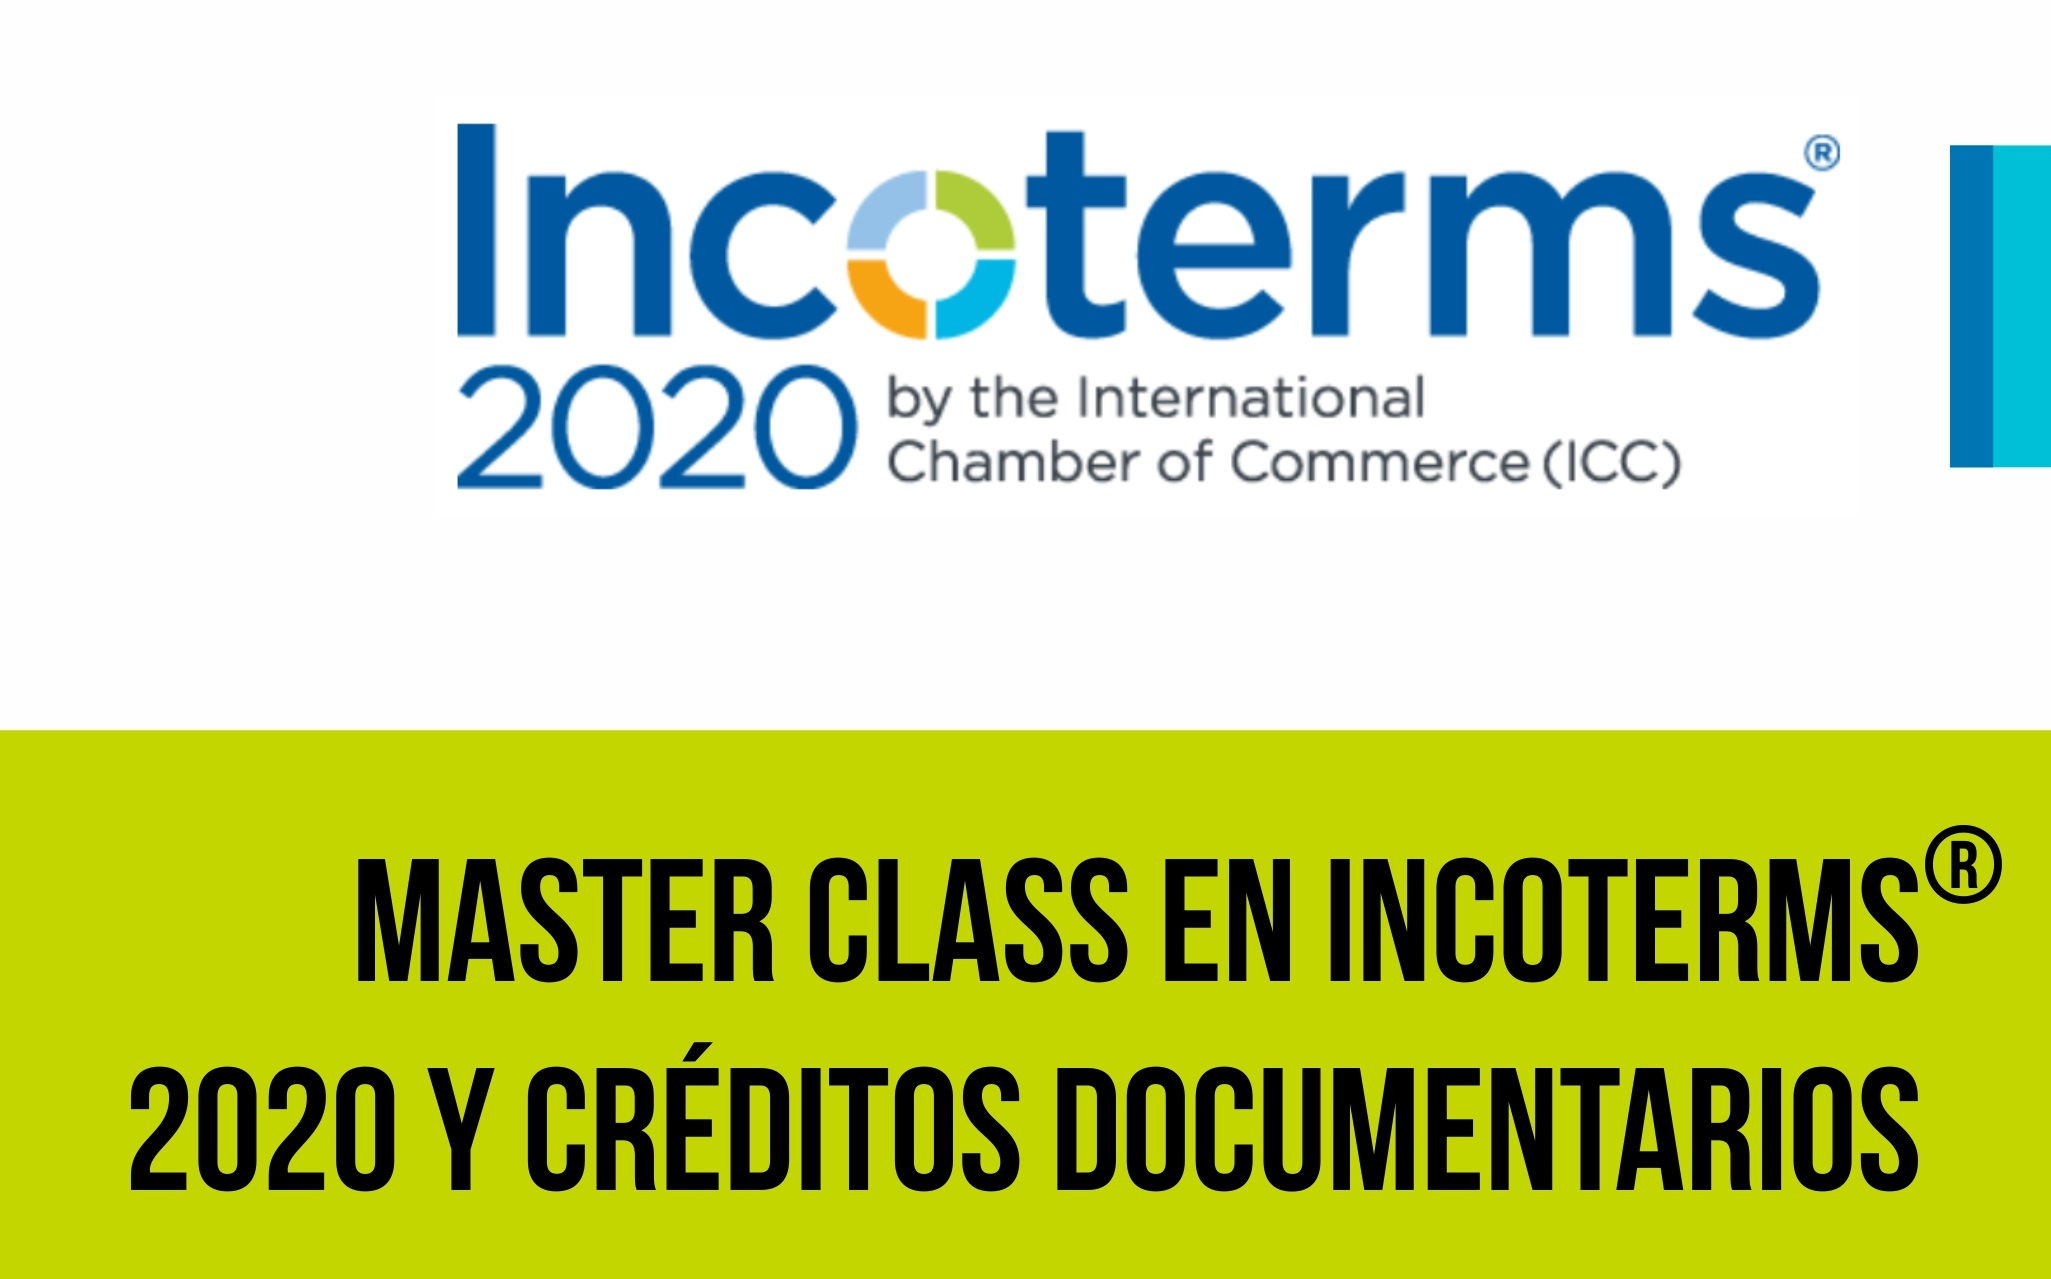 Masterclass en Incoterms®2020 y Creditos Documentarios